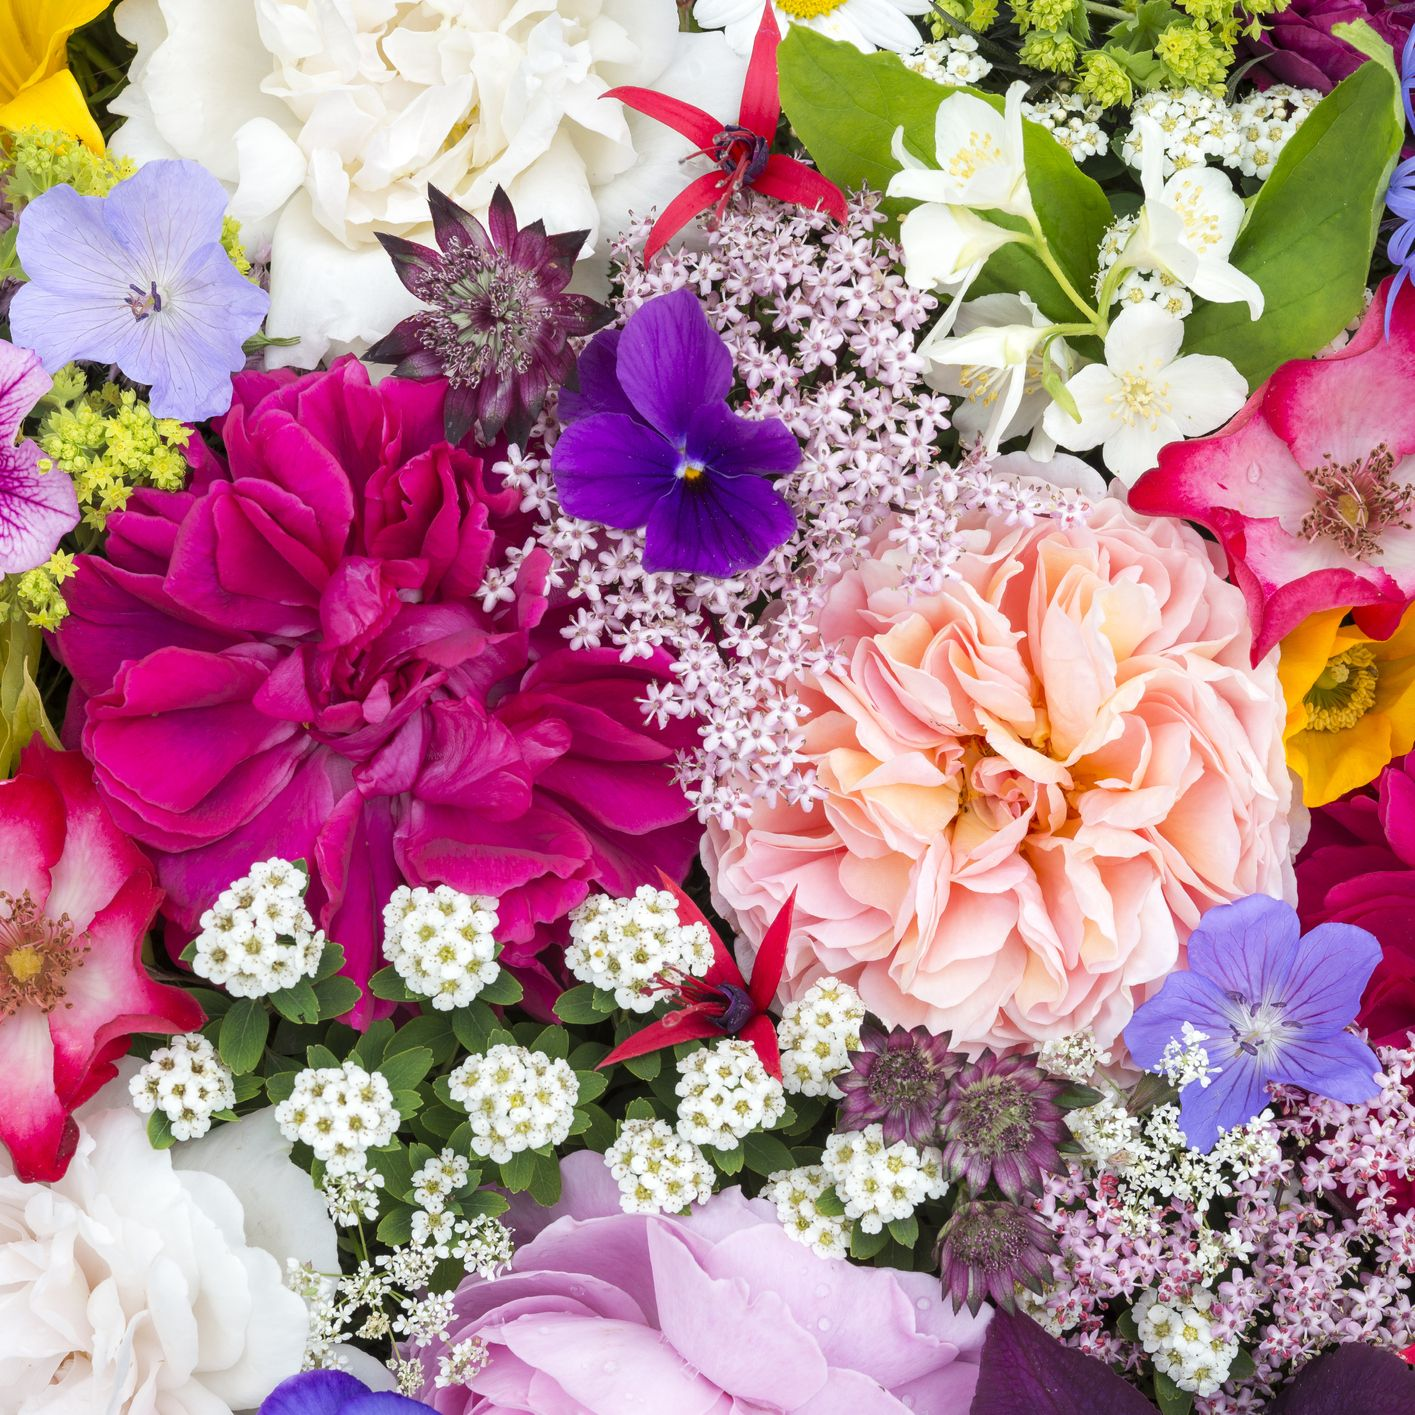 Fresh flowers can reduce pain and help tiredness study reveals